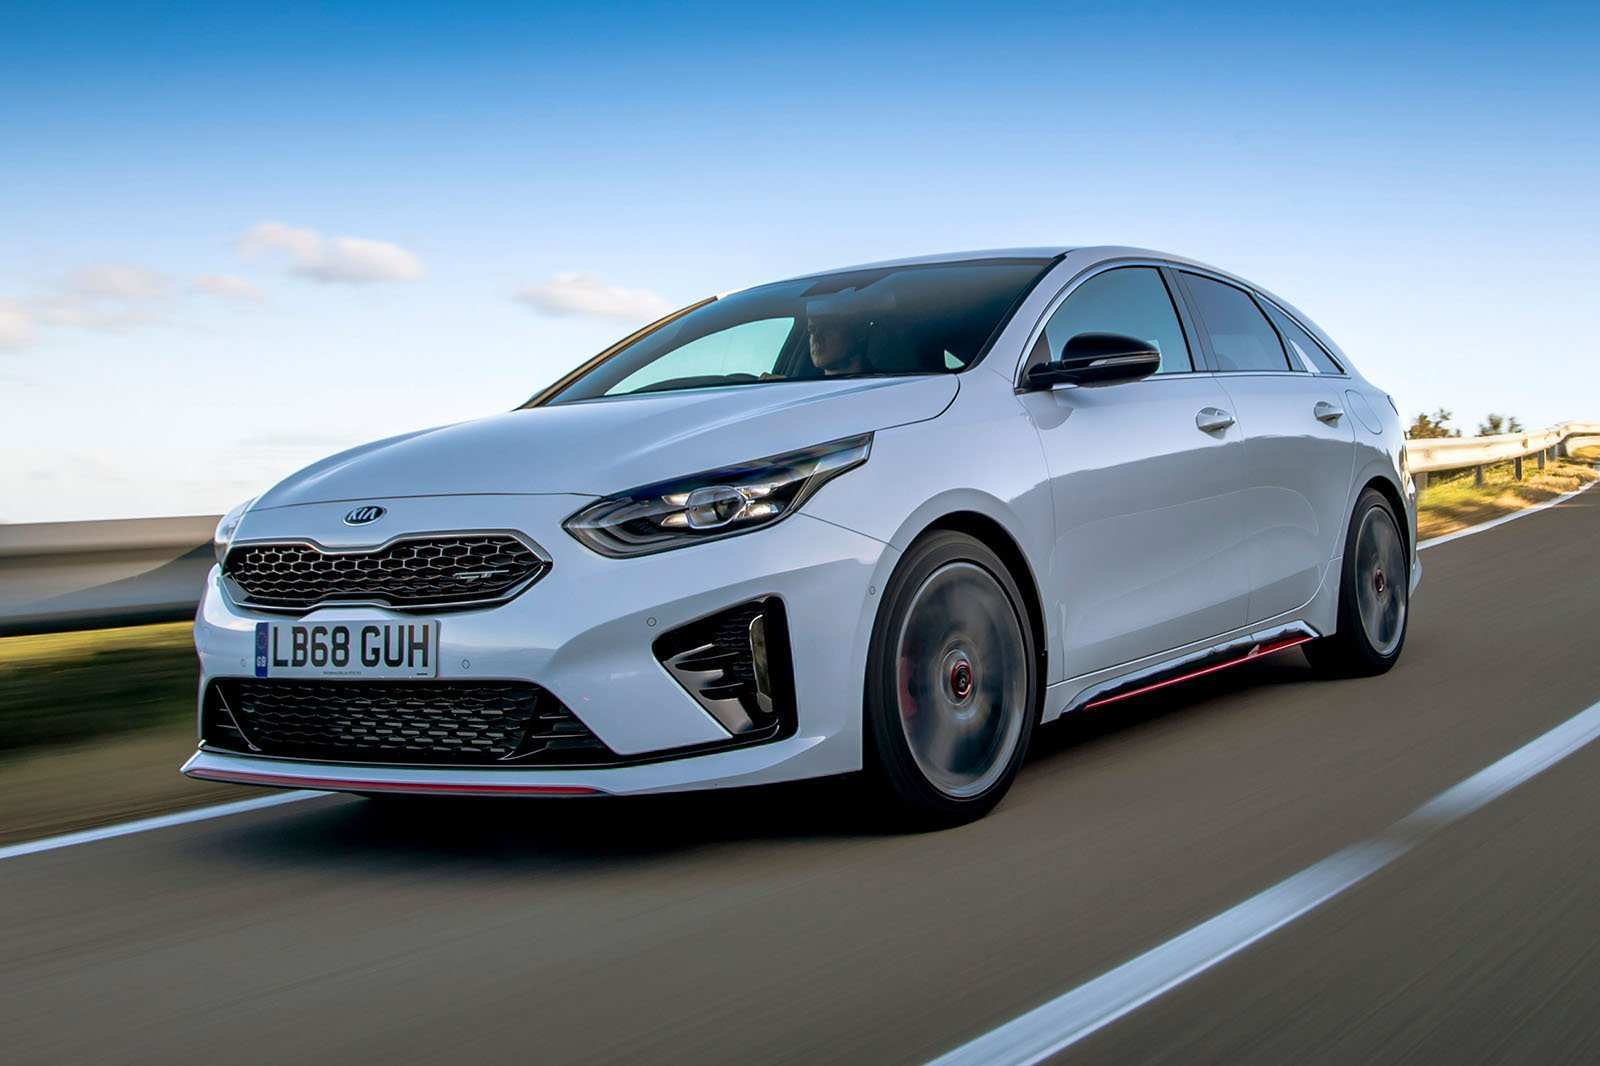 60 The The Kia Ceed 2019 Interior Interior Exterior And Review Redesign and Concept for The Kia Ceed 2019 Interior Interior Exterior And Review